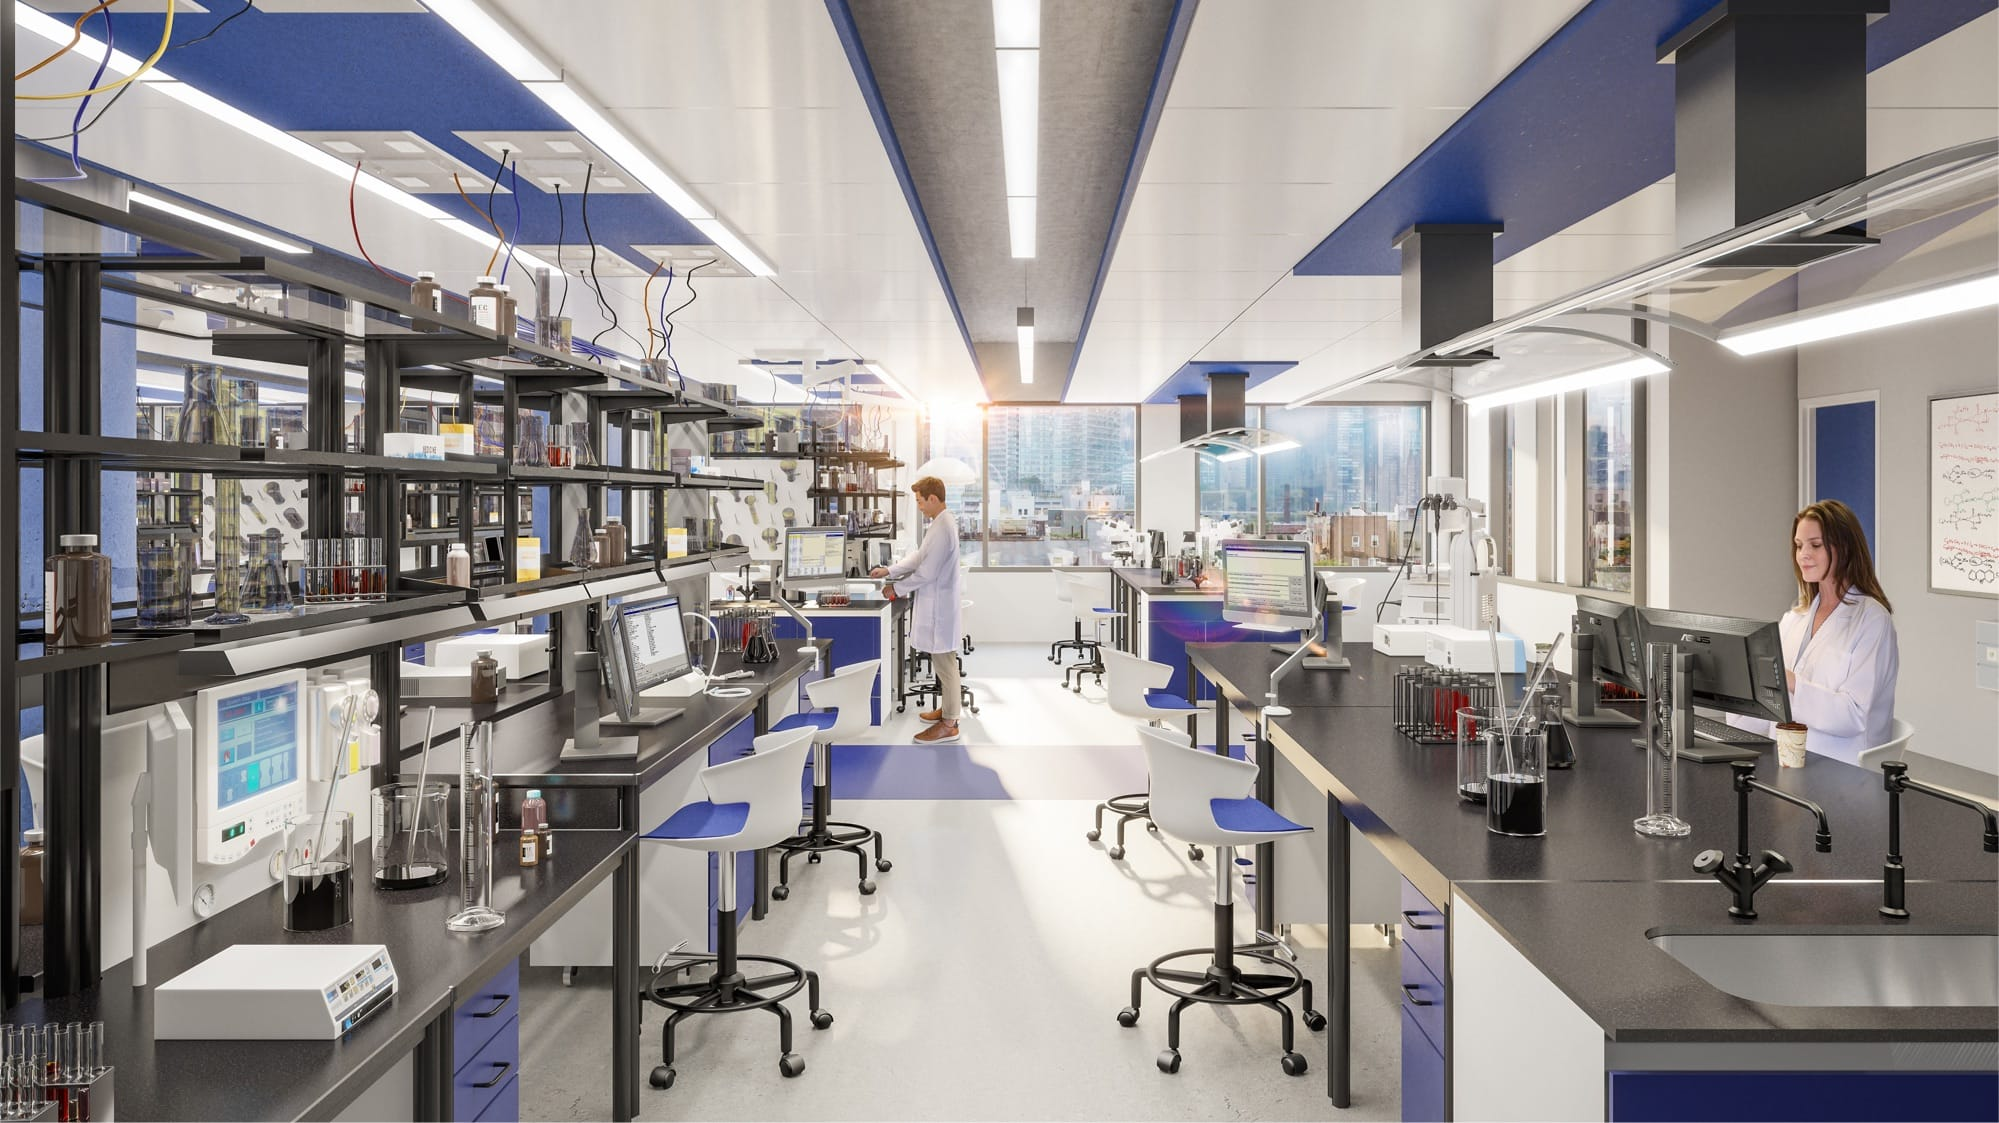 A male and female scientist work in state-of-the-art lab space at Innolabs